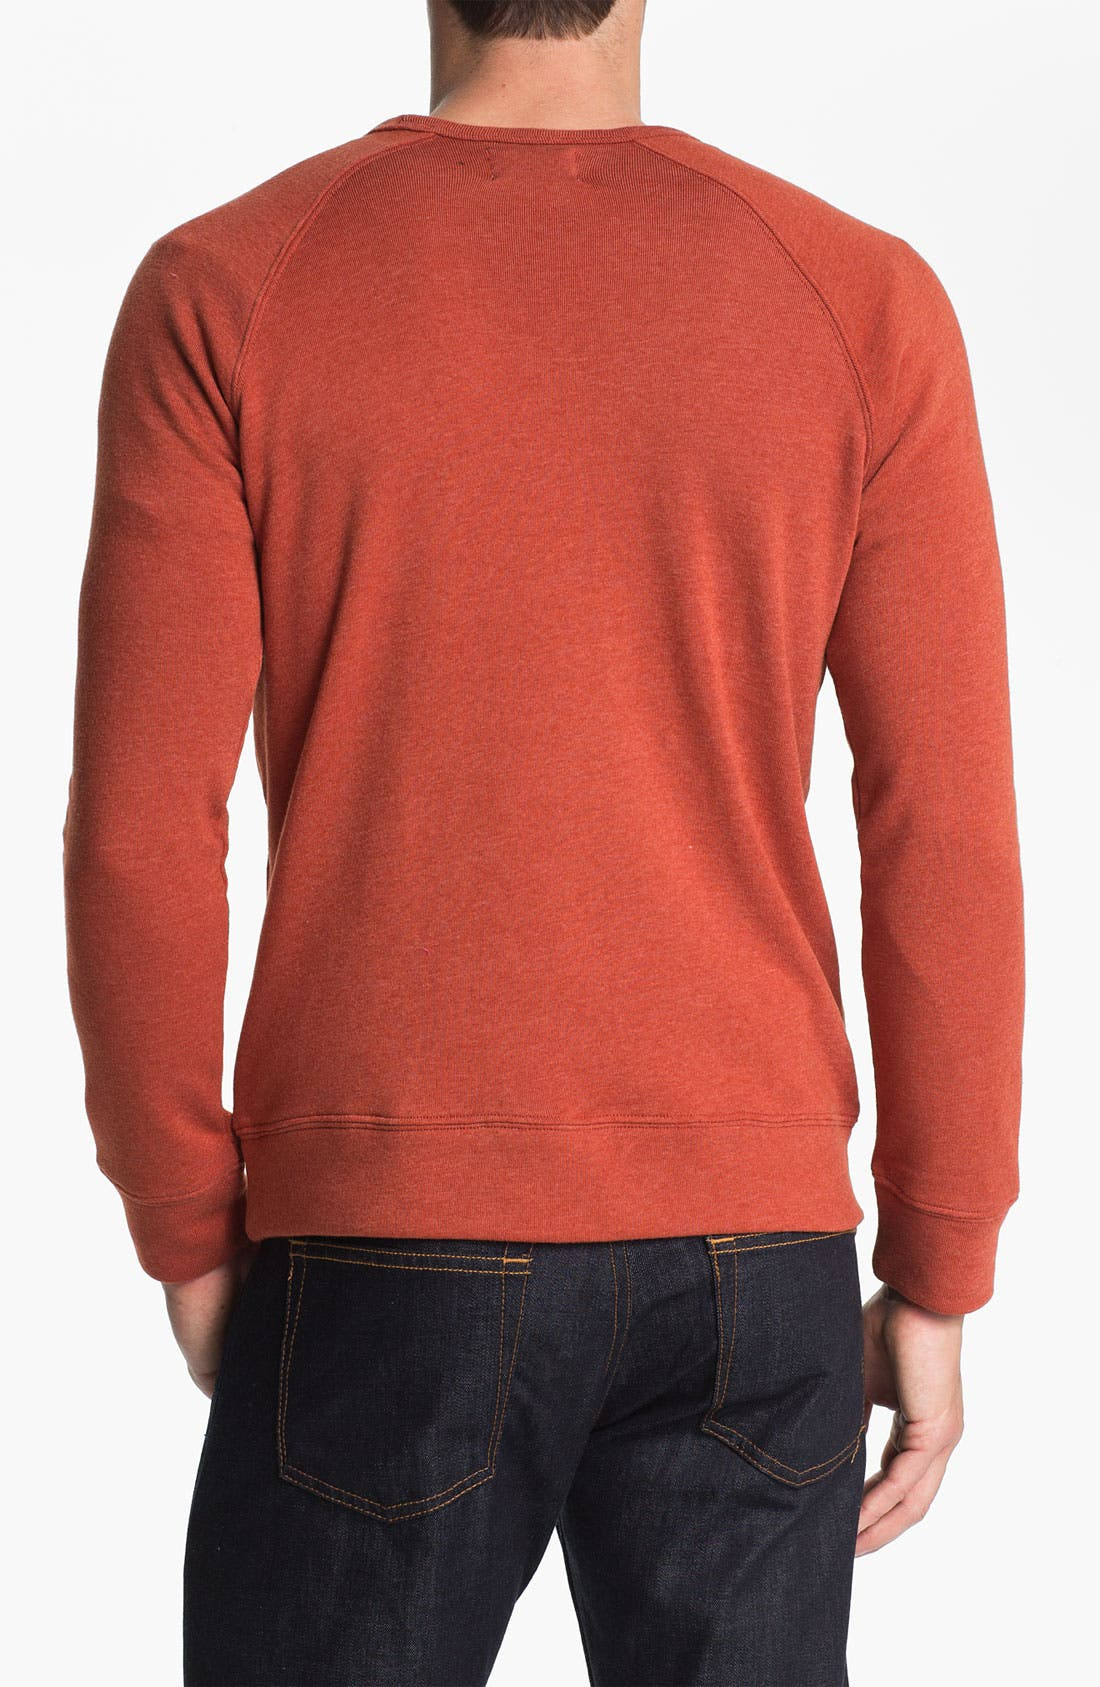 Alternate Image 2  - Obey 'Lofty Creature Comforts' Crewneck Sweatshirt